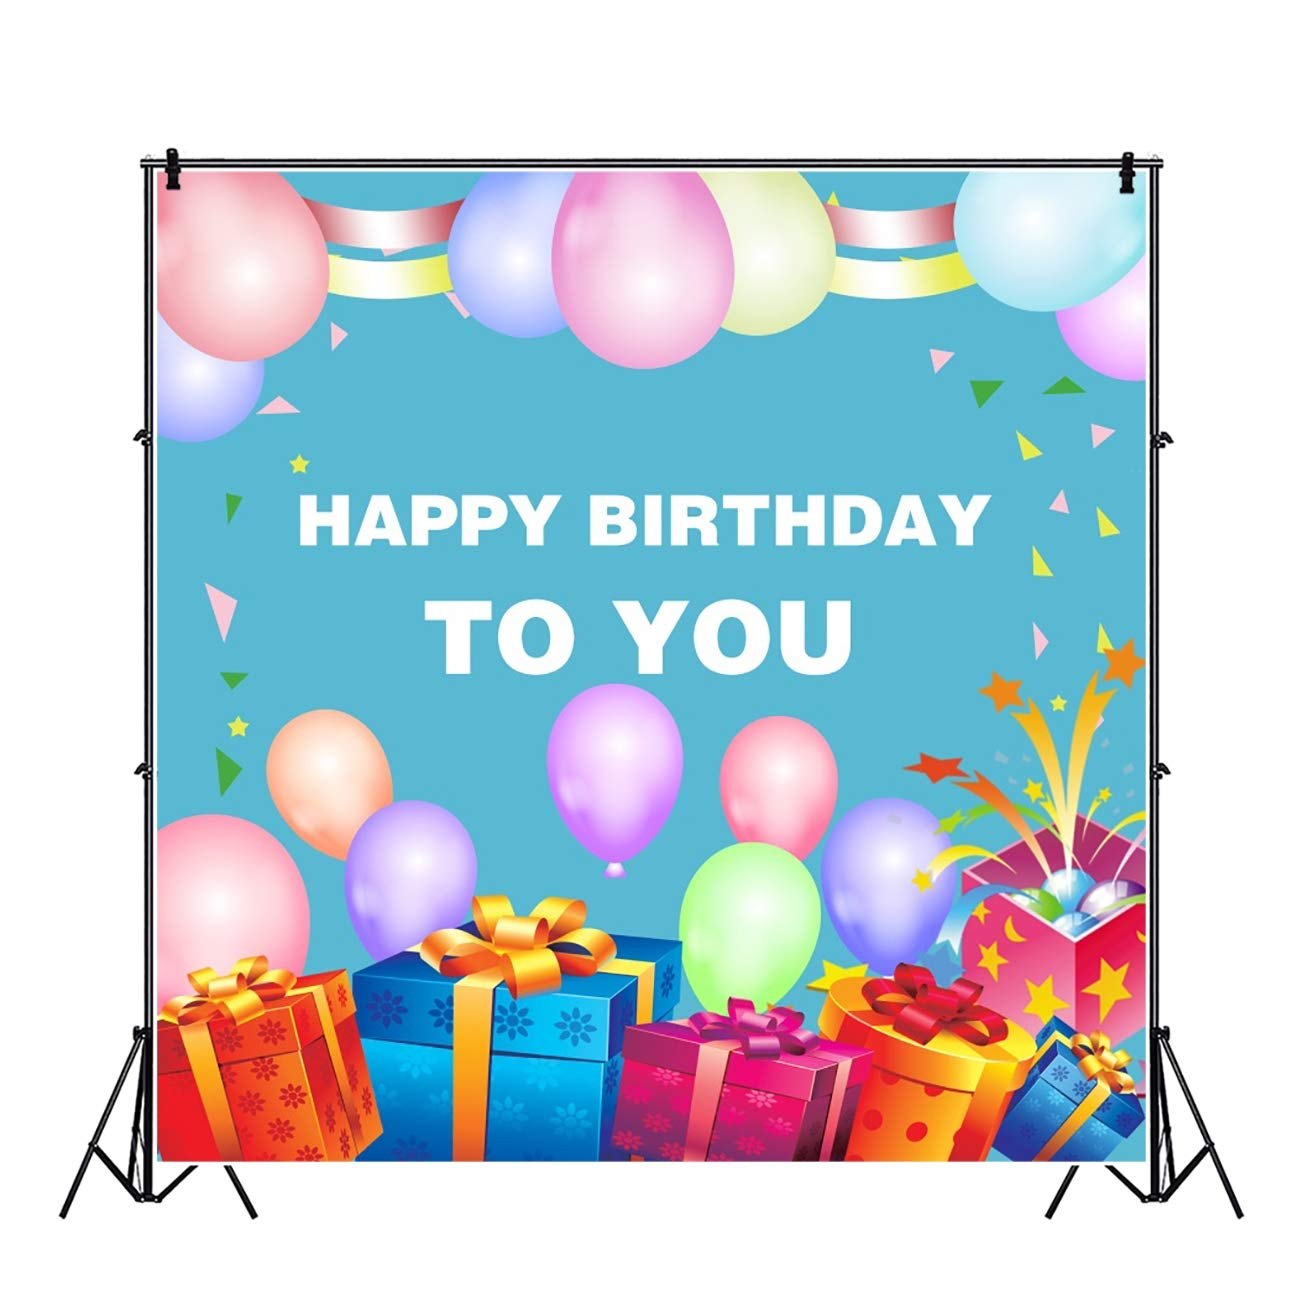 Buy Baocicco 6 5x6 5ft Happy Birthday To You Backdrop Colorful Balloons Ribbon Birthday Gift Box Photography Background Surprise Party Birthday Party Girls Boys Photo Video Shoot Prop Online At Low Price In India